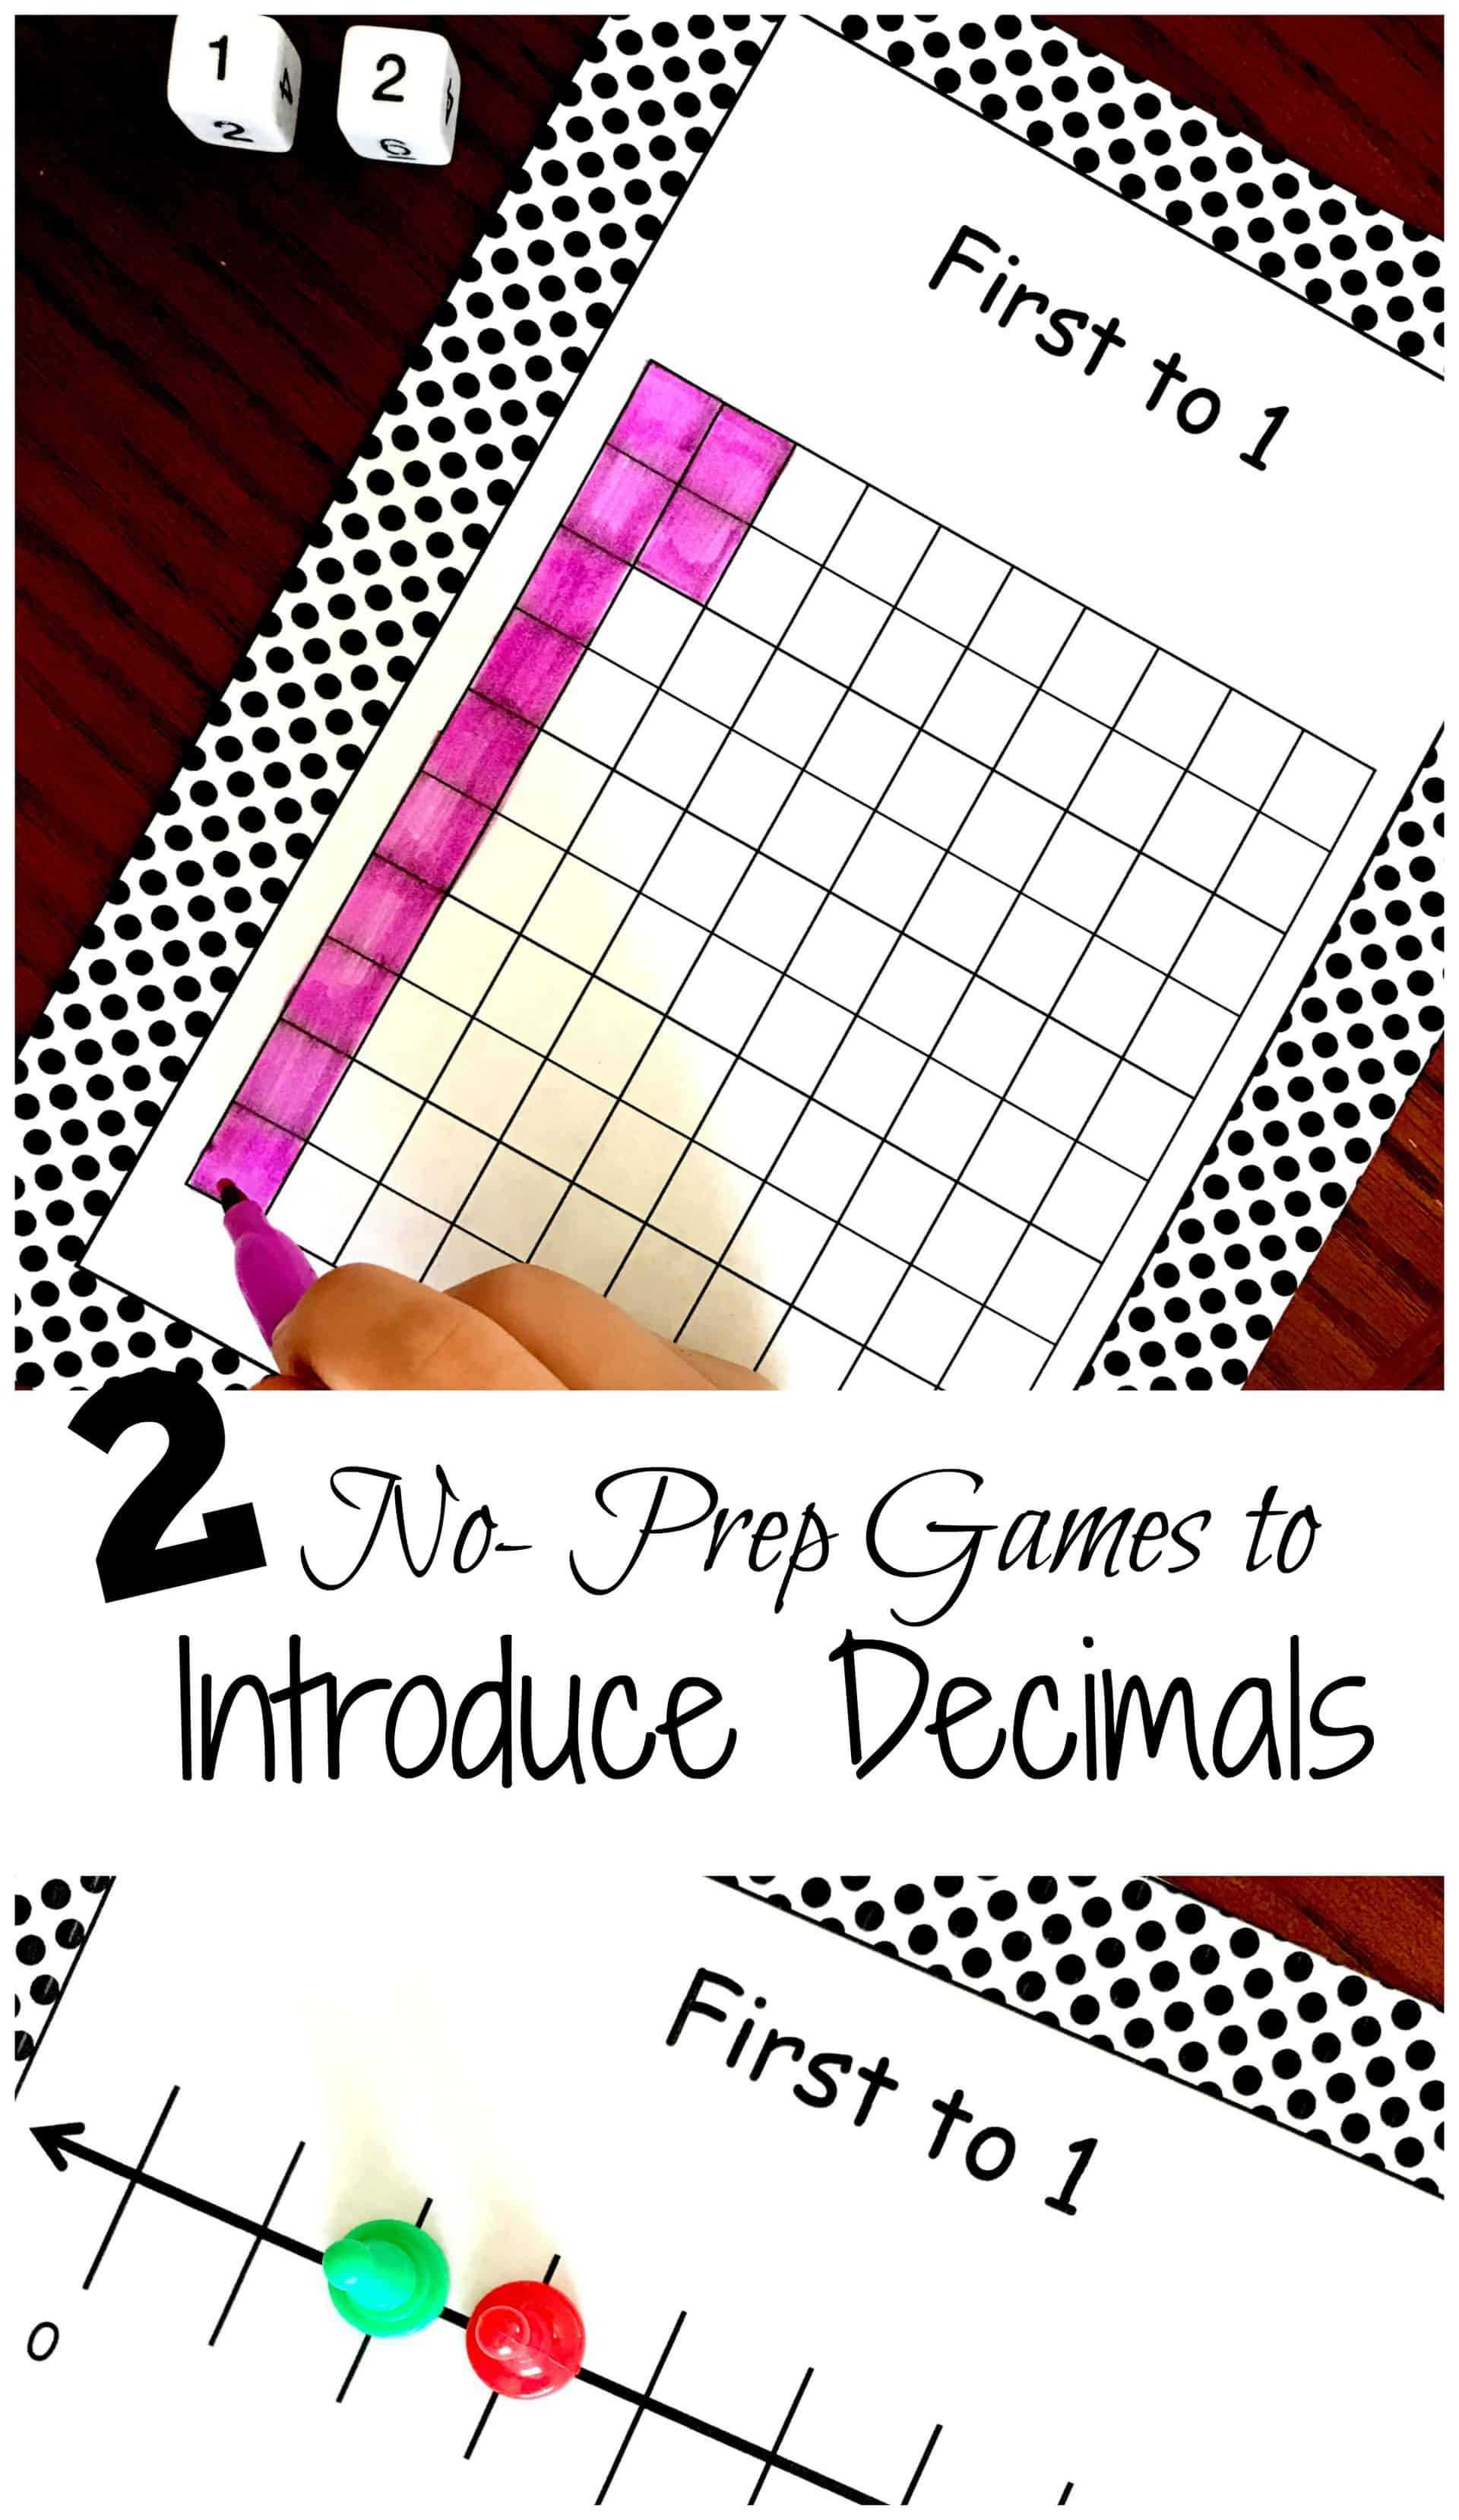 Are you about to start a decimal unit? These no-prep printable decimal games are a great way to introduce modeling decimals in a fun, hands-on way.